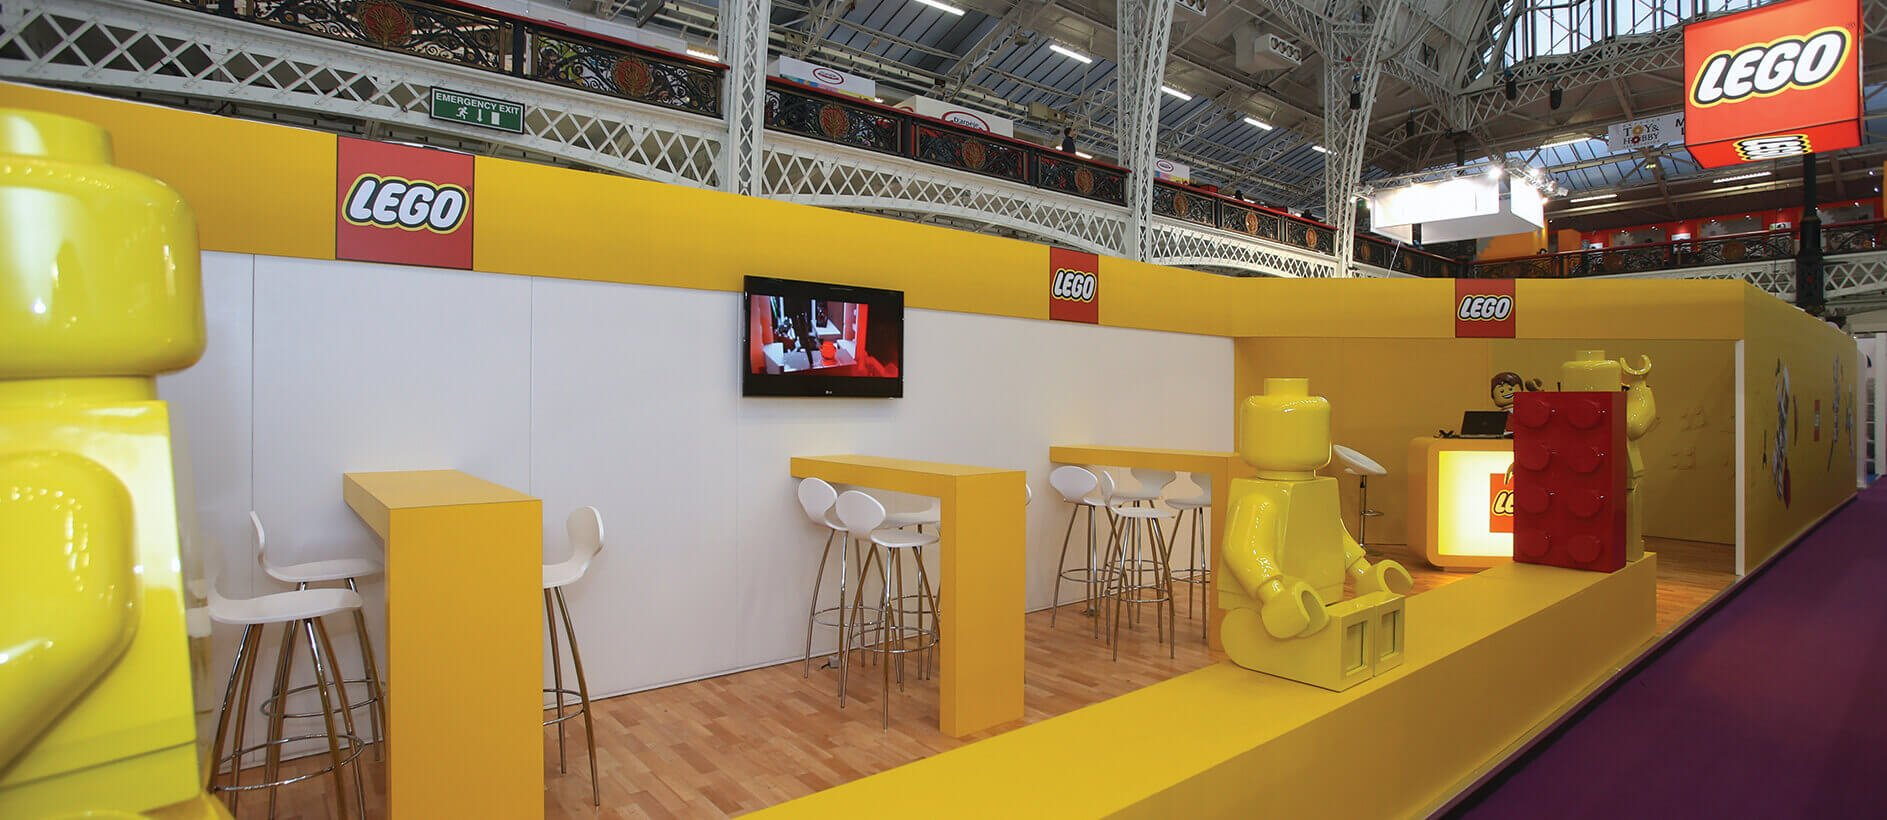 Modular Exhibition Booth : Lego stand exhibition by exhibit sixty